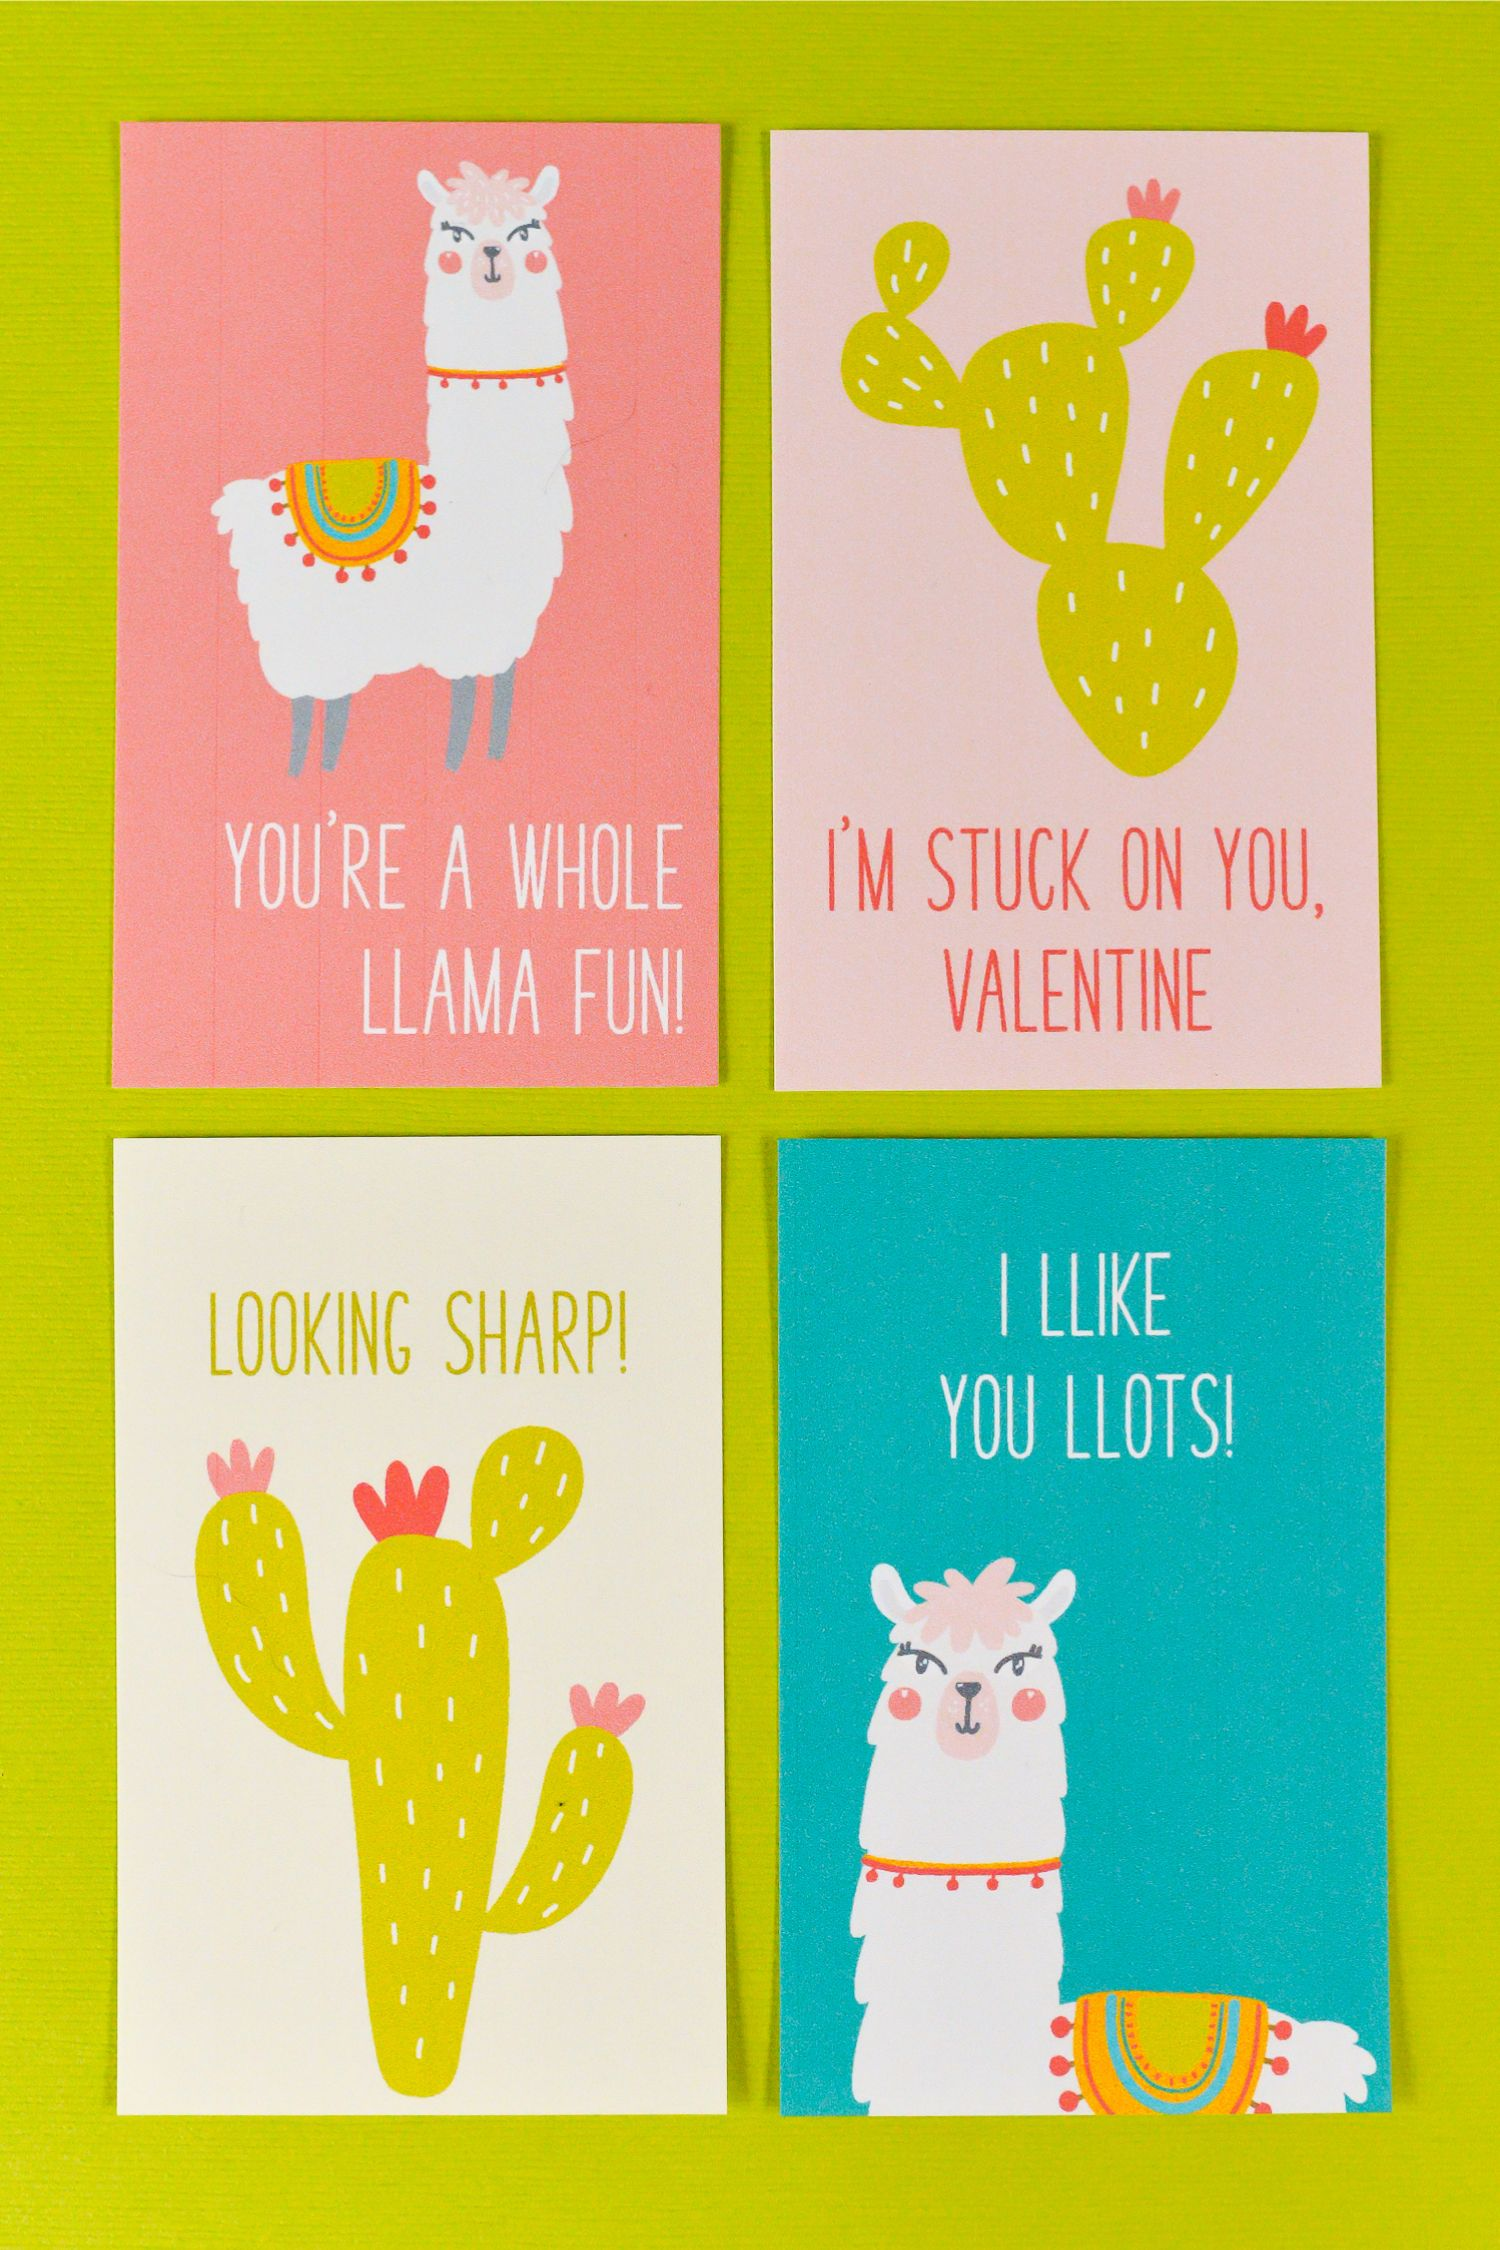 Print These Four Too Cute Cactus And Llama Valentines With This Free Download An Adorable Printable Valentine For Friends And Classmates Who Wouldn T Want To G Funny Printable Birthday Cards Birthday Card Printable